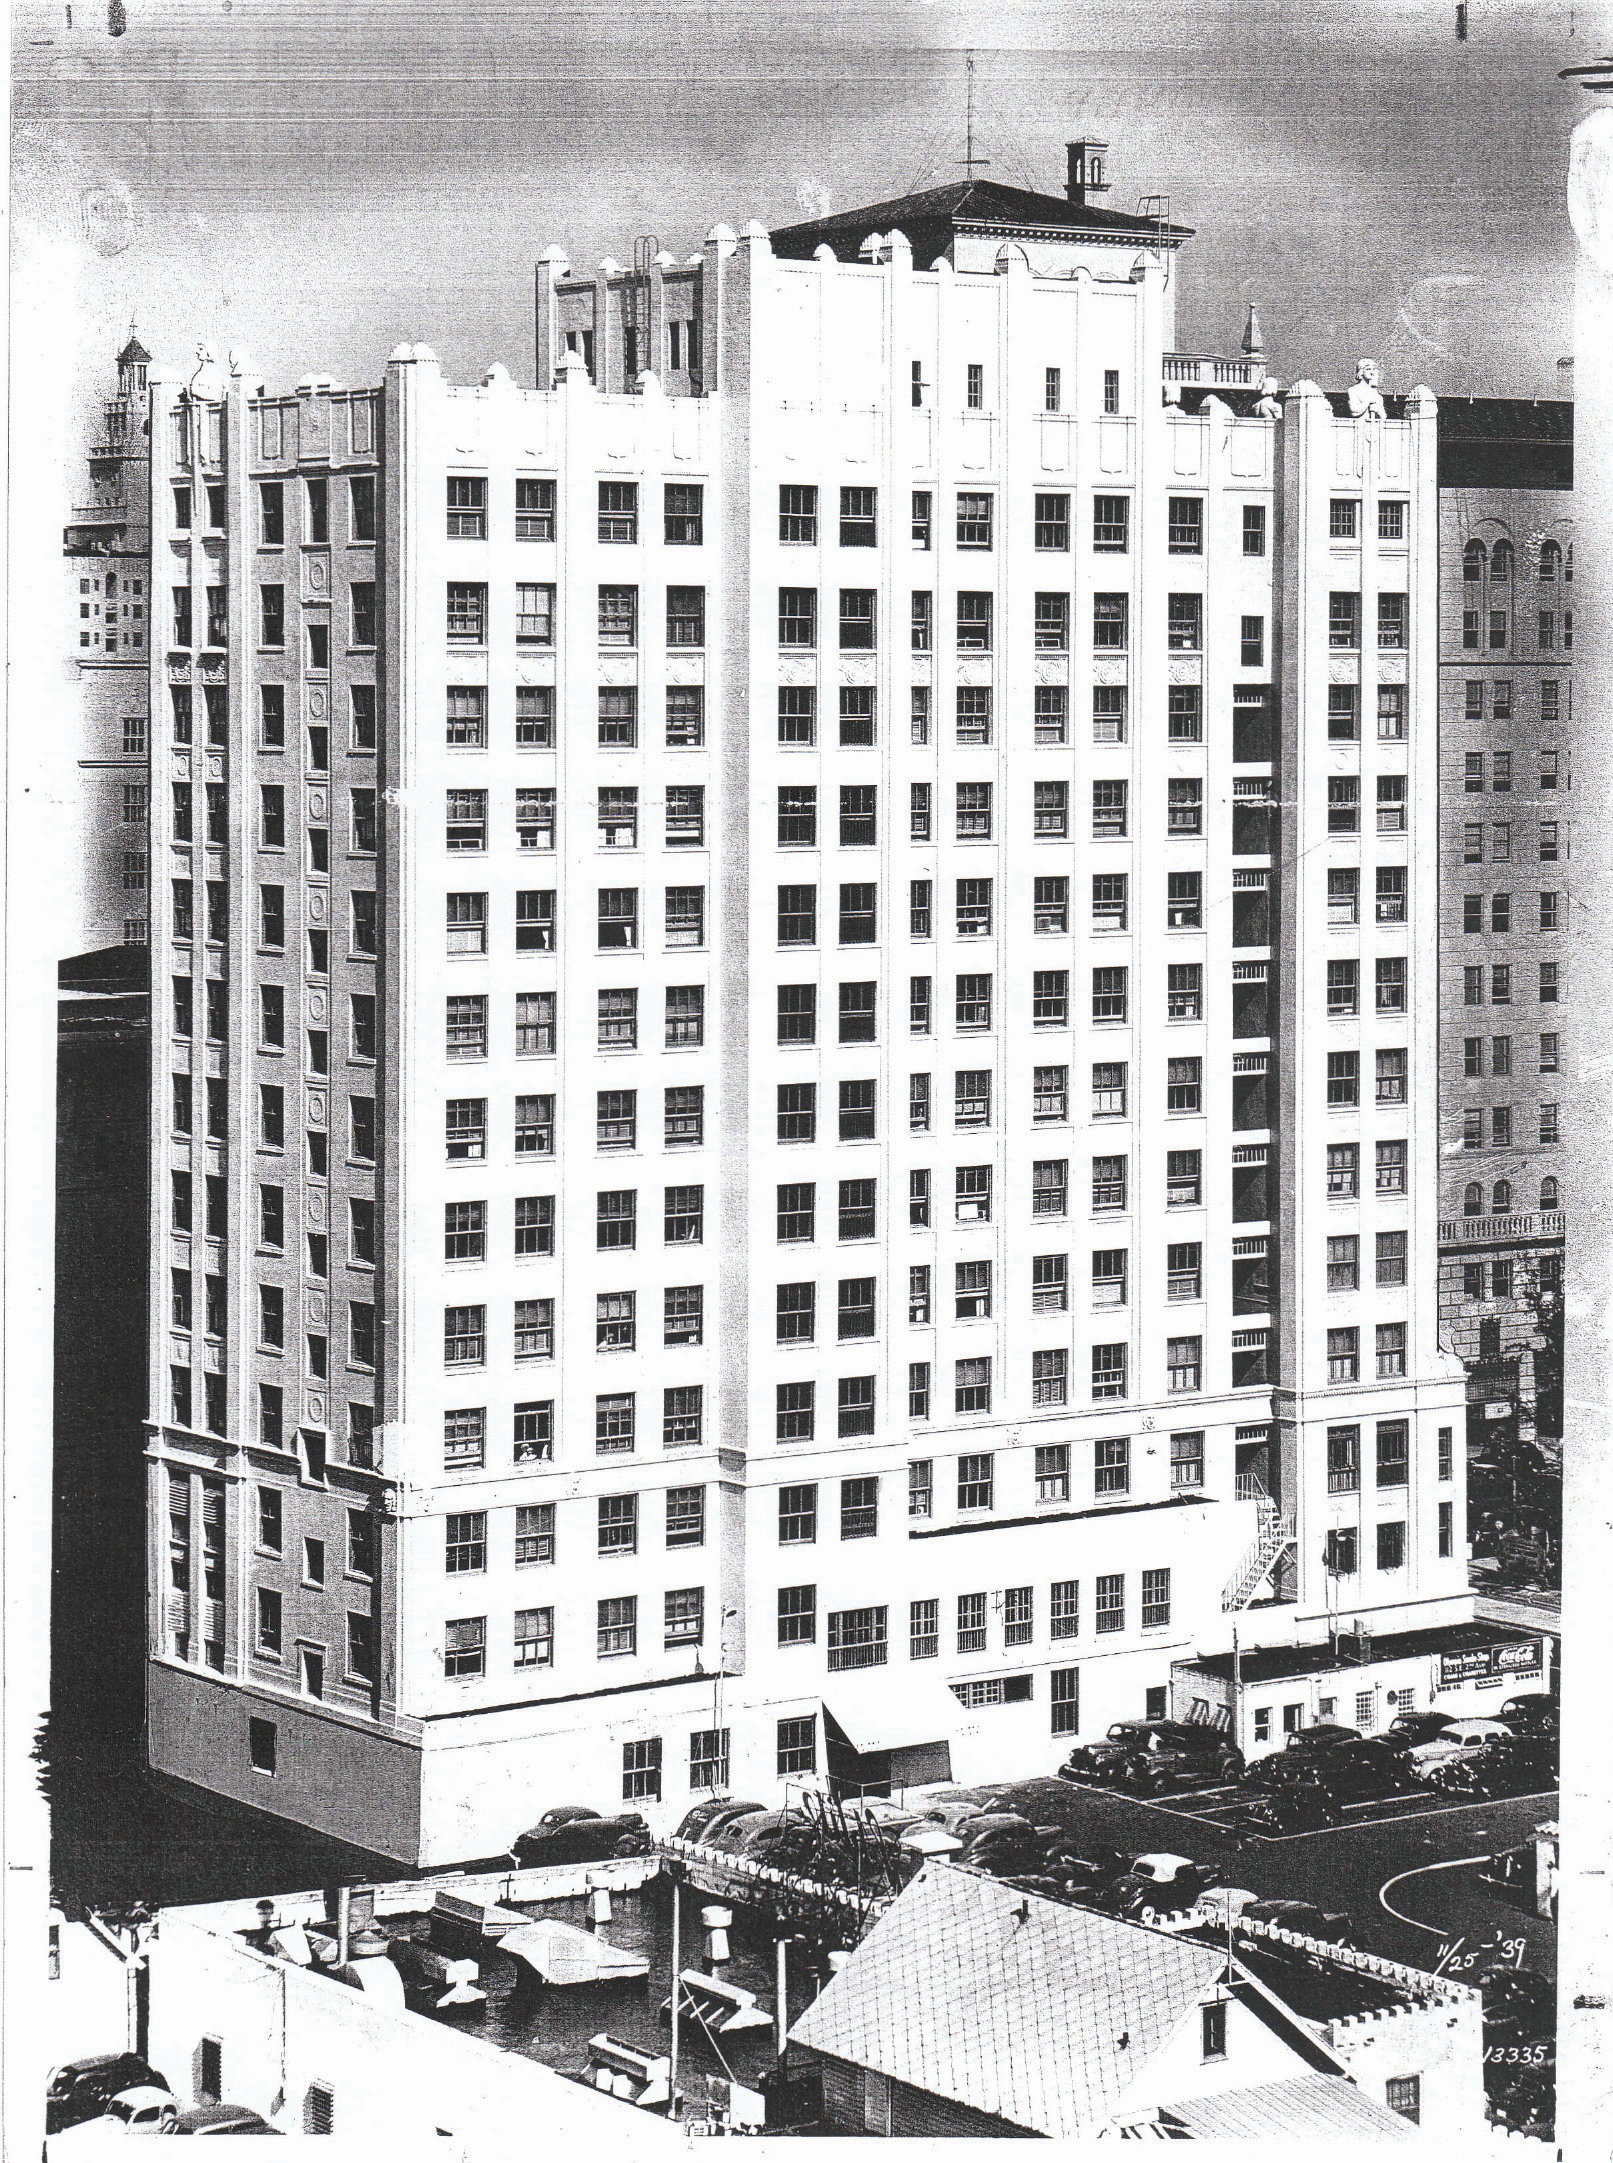 The Huntington Building sometime after its completion. Image obtained from the JSK Architectural Group.